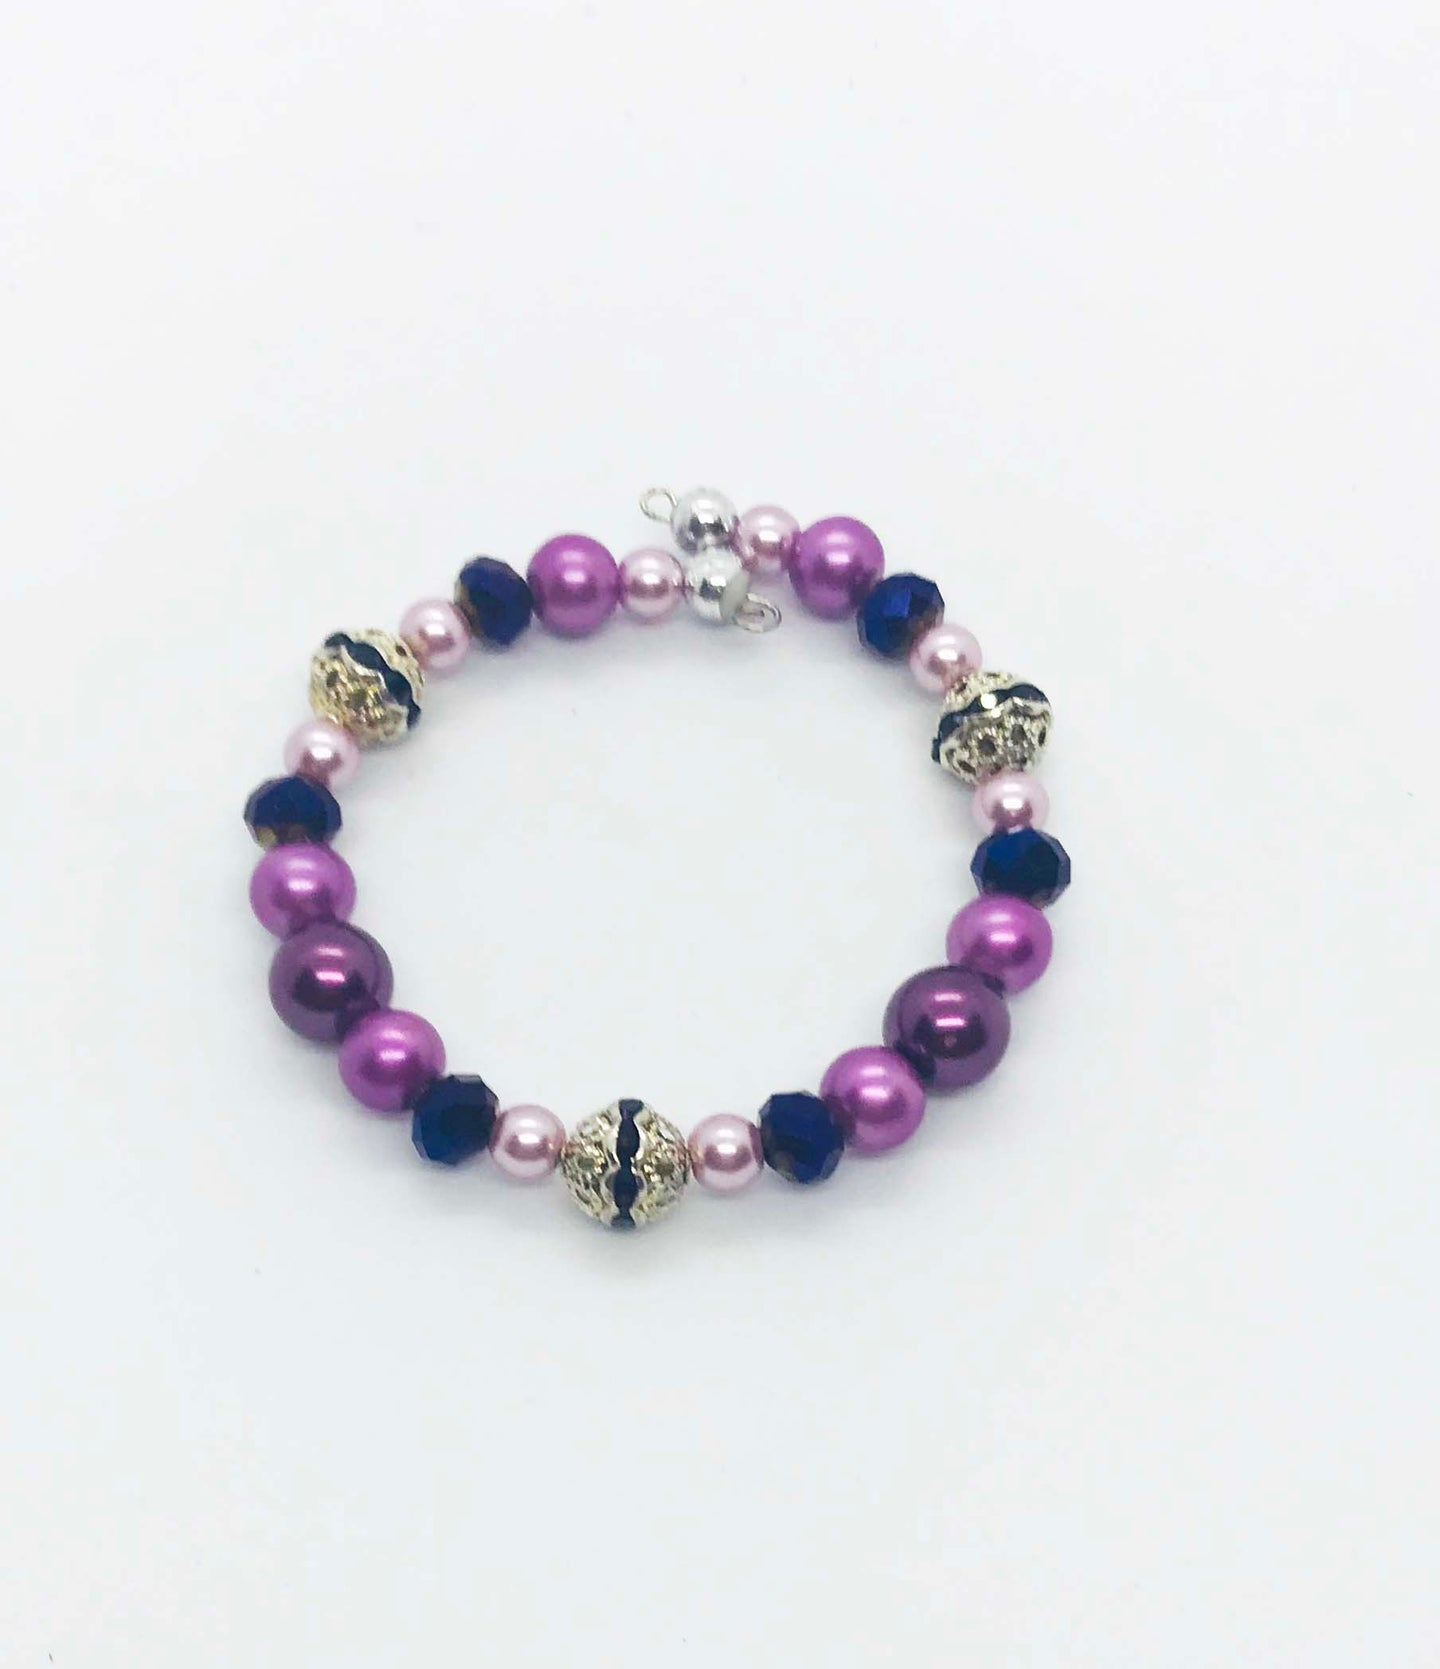 Kid's Glass Bead Cuff Bracelet - MB350